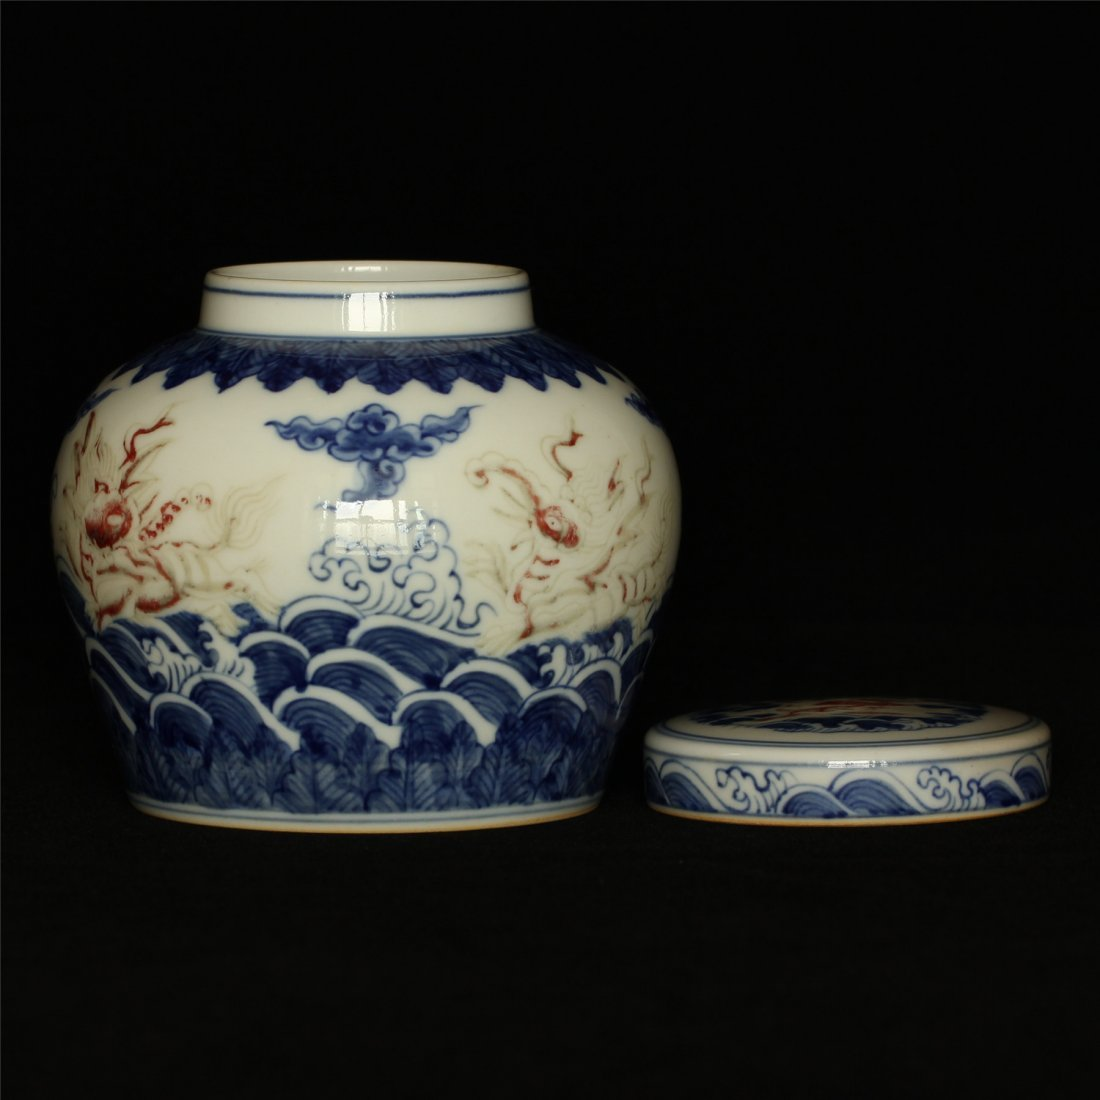 Blue and white & underglaze red porcelain jar of Tian - 9